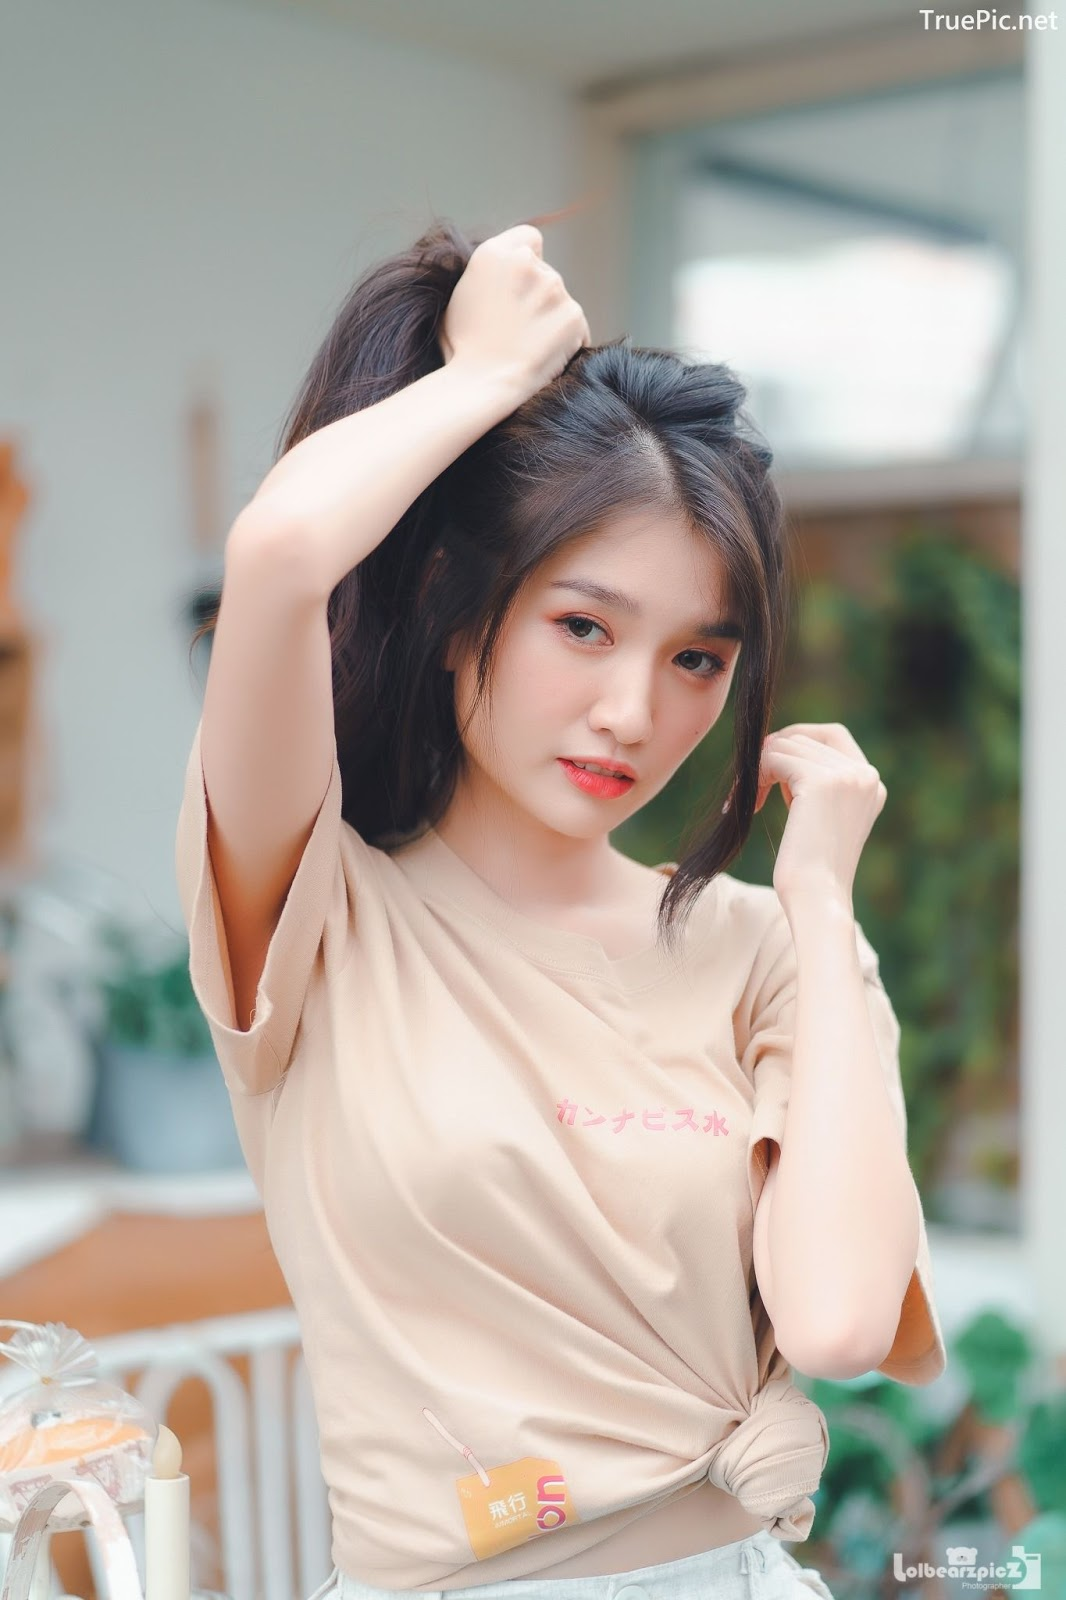 Image Thailand Model - Yatawee Limsiripothong - The Power Of Love - TruePic.net - Picture-9